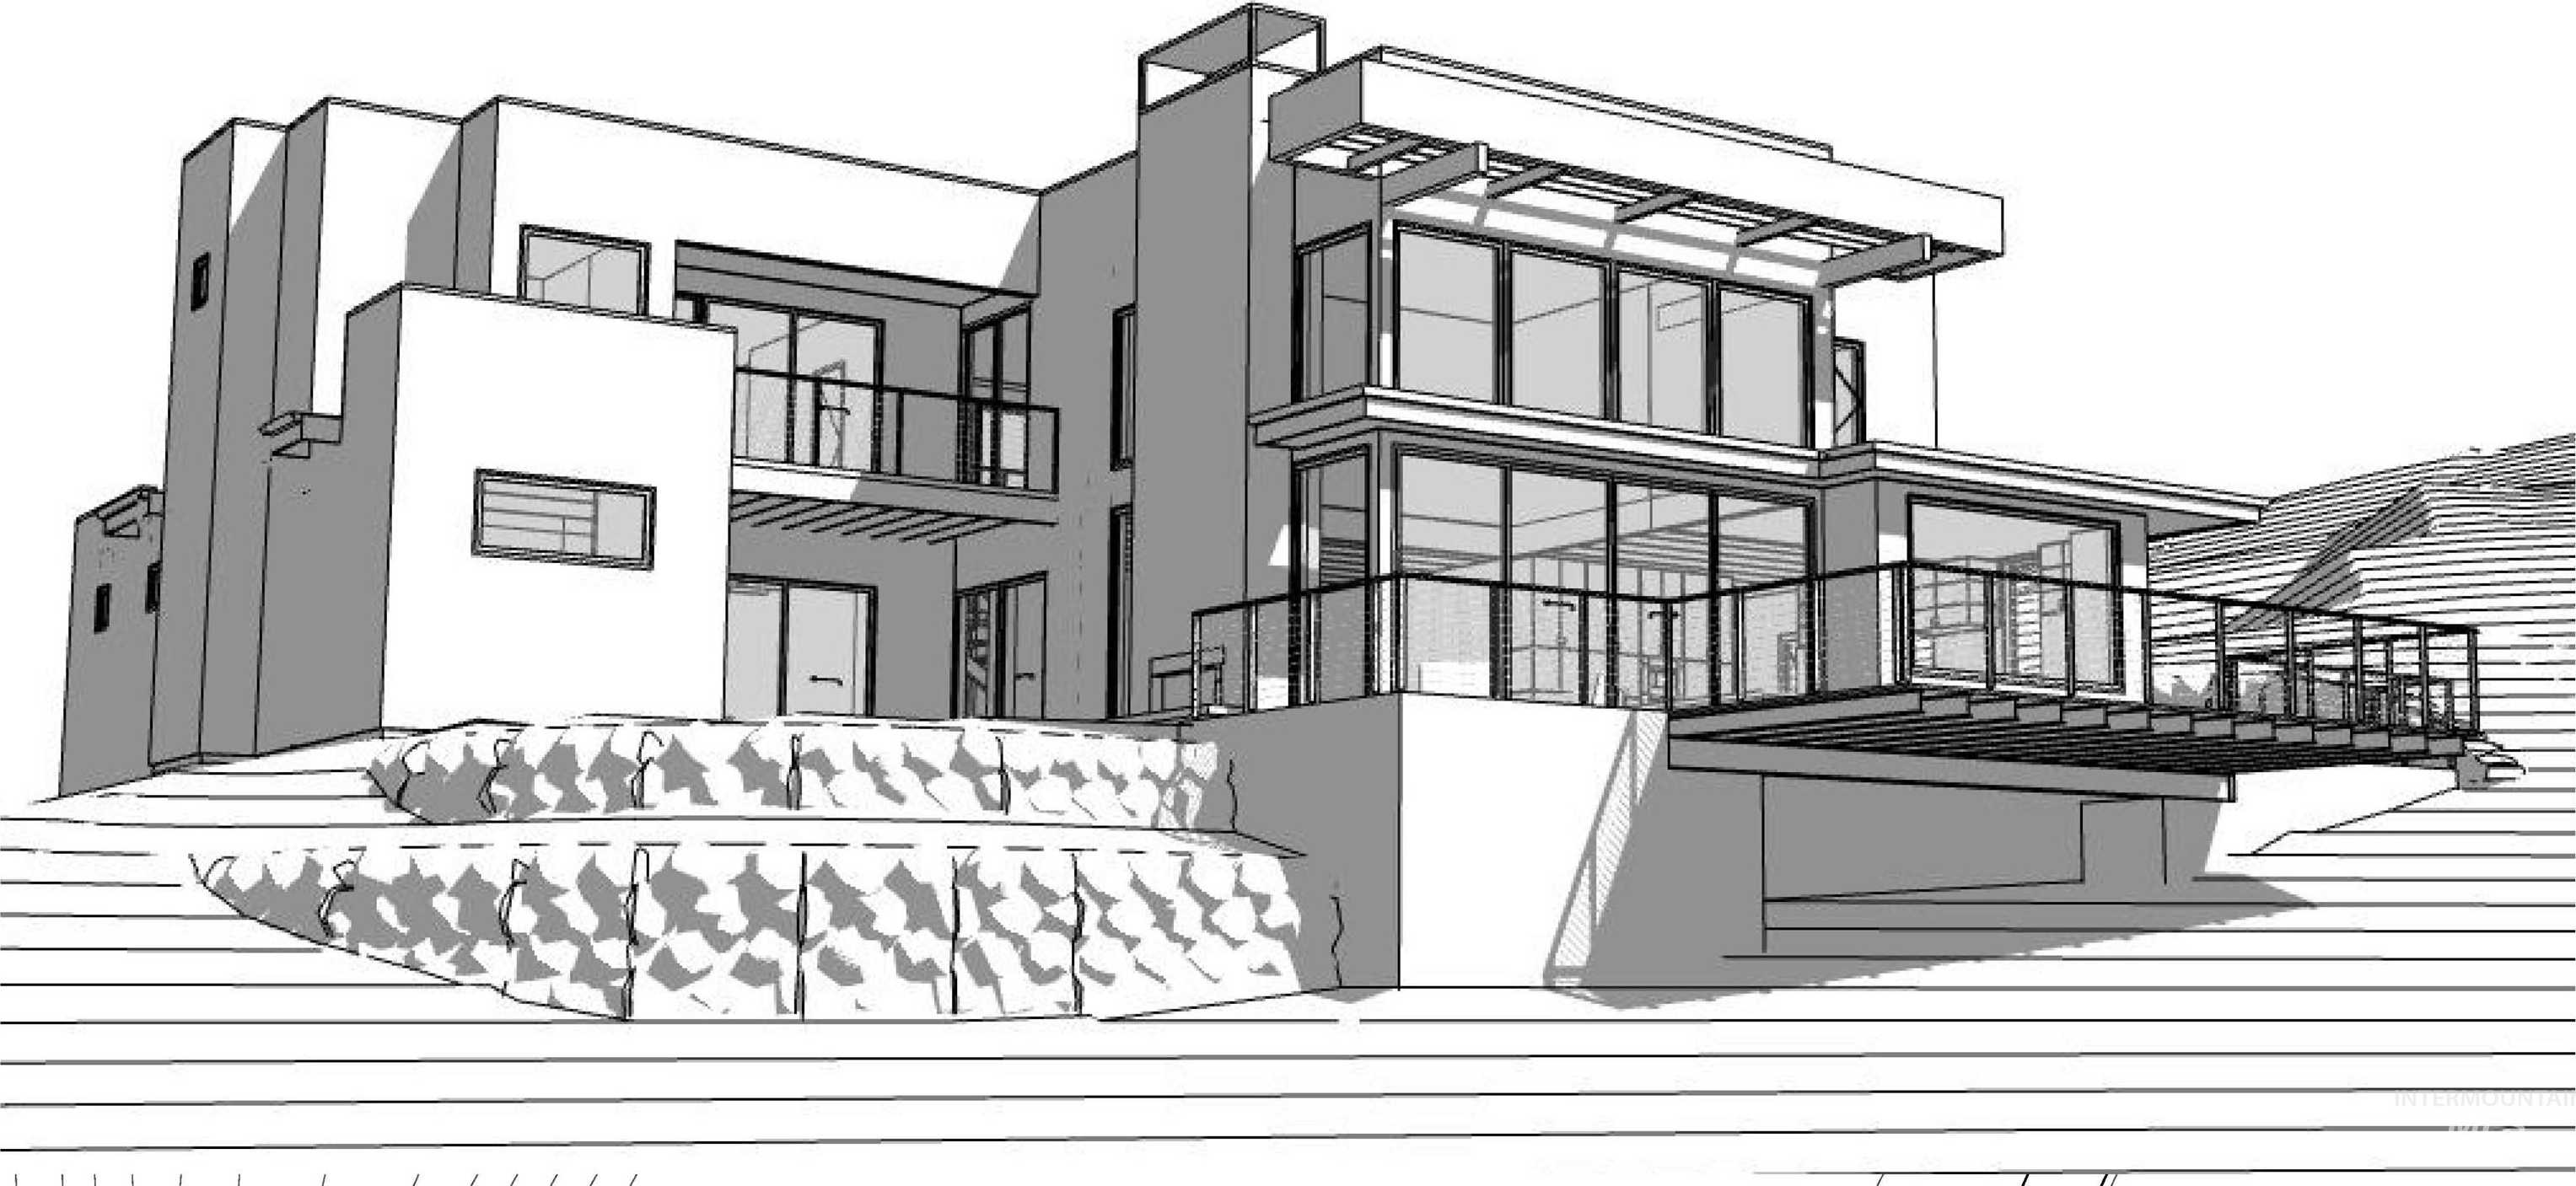 $3,750,000 - 4Br/5Ba -  for Sale in Highlands Cove, Boise